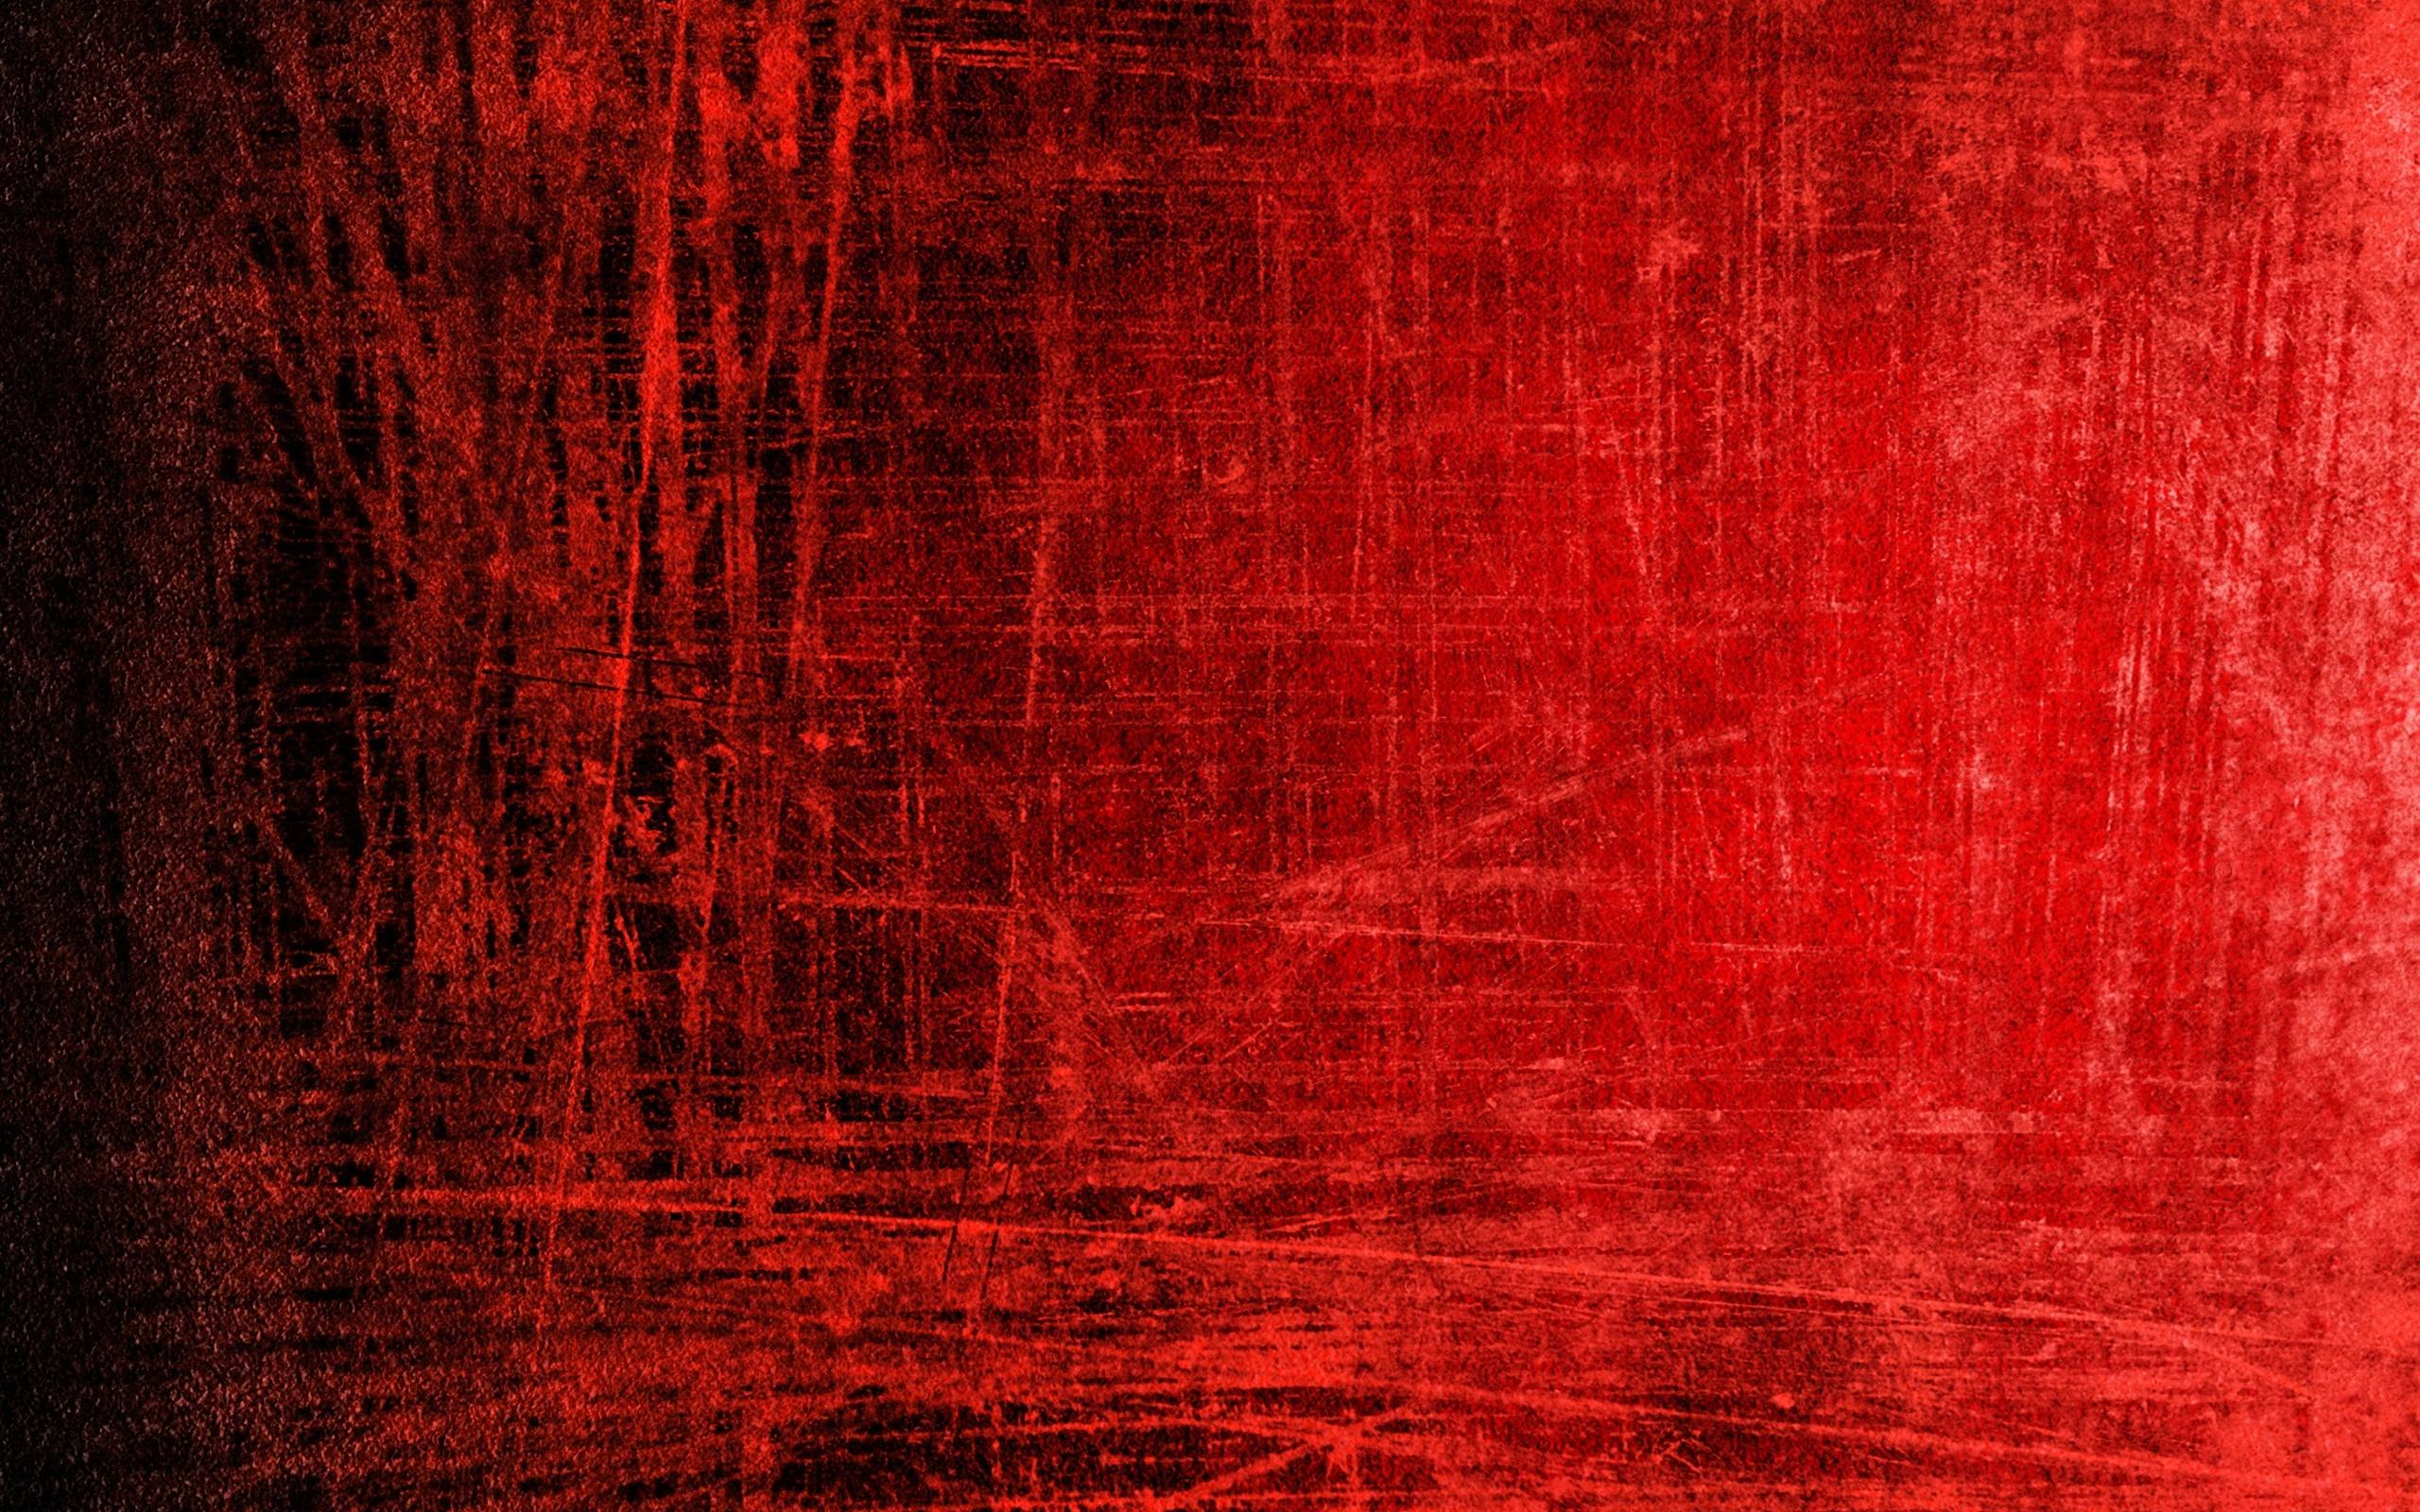 Wallpaper Hd 3d Moving Red Dr Odd